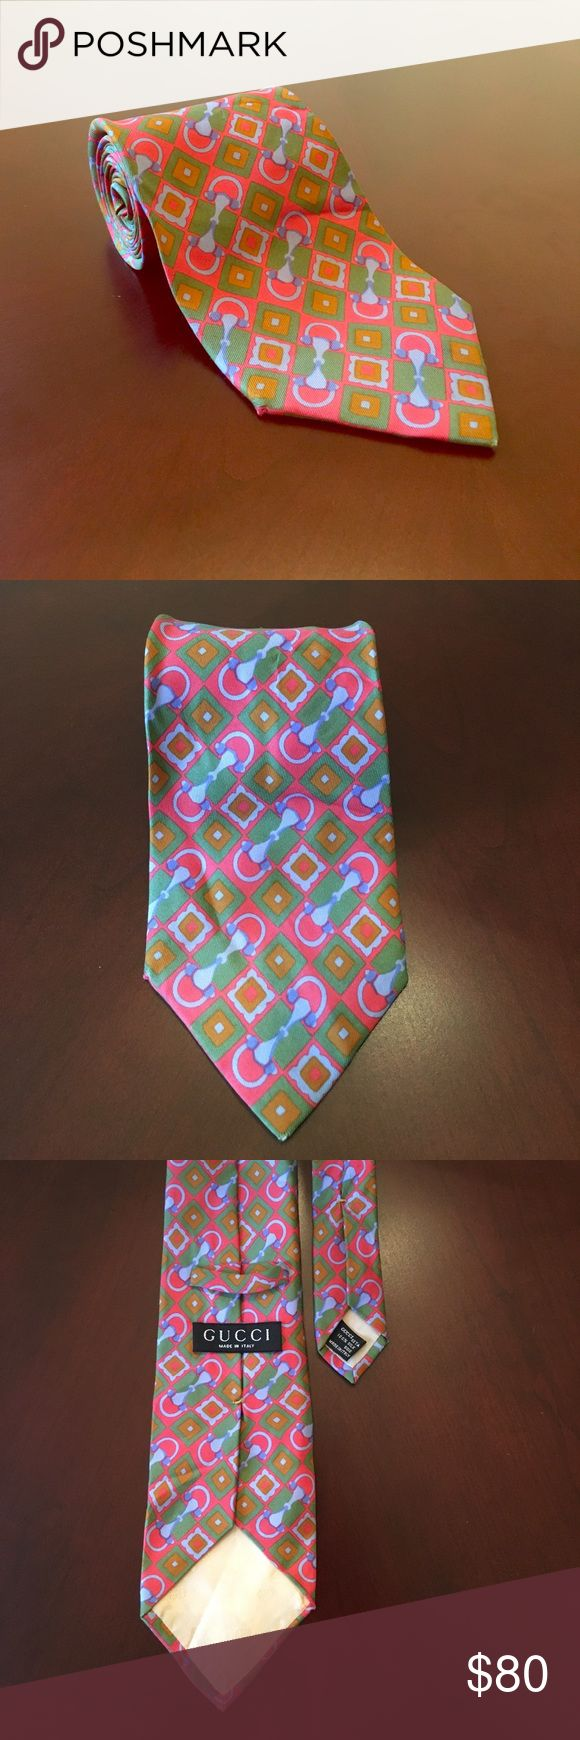 🎉🎊HOST PICK!!🎊🎉Men's Gucci Designer Tie! L👀k! Men's Gucci Designer Tie! 100% Silk! Spring Colors (Pink/Green/Blue). Tie is in Great Condition, but does have a few wrinkles. This tie is Begging to be worn! Stunning Geometric Design. No Low-Ball Offers please. Smoke-Free as always. Ships in 24 hrs or less! BUNDLE and SAVE 15% + Save on Shipping! Gucci Accessories Ties